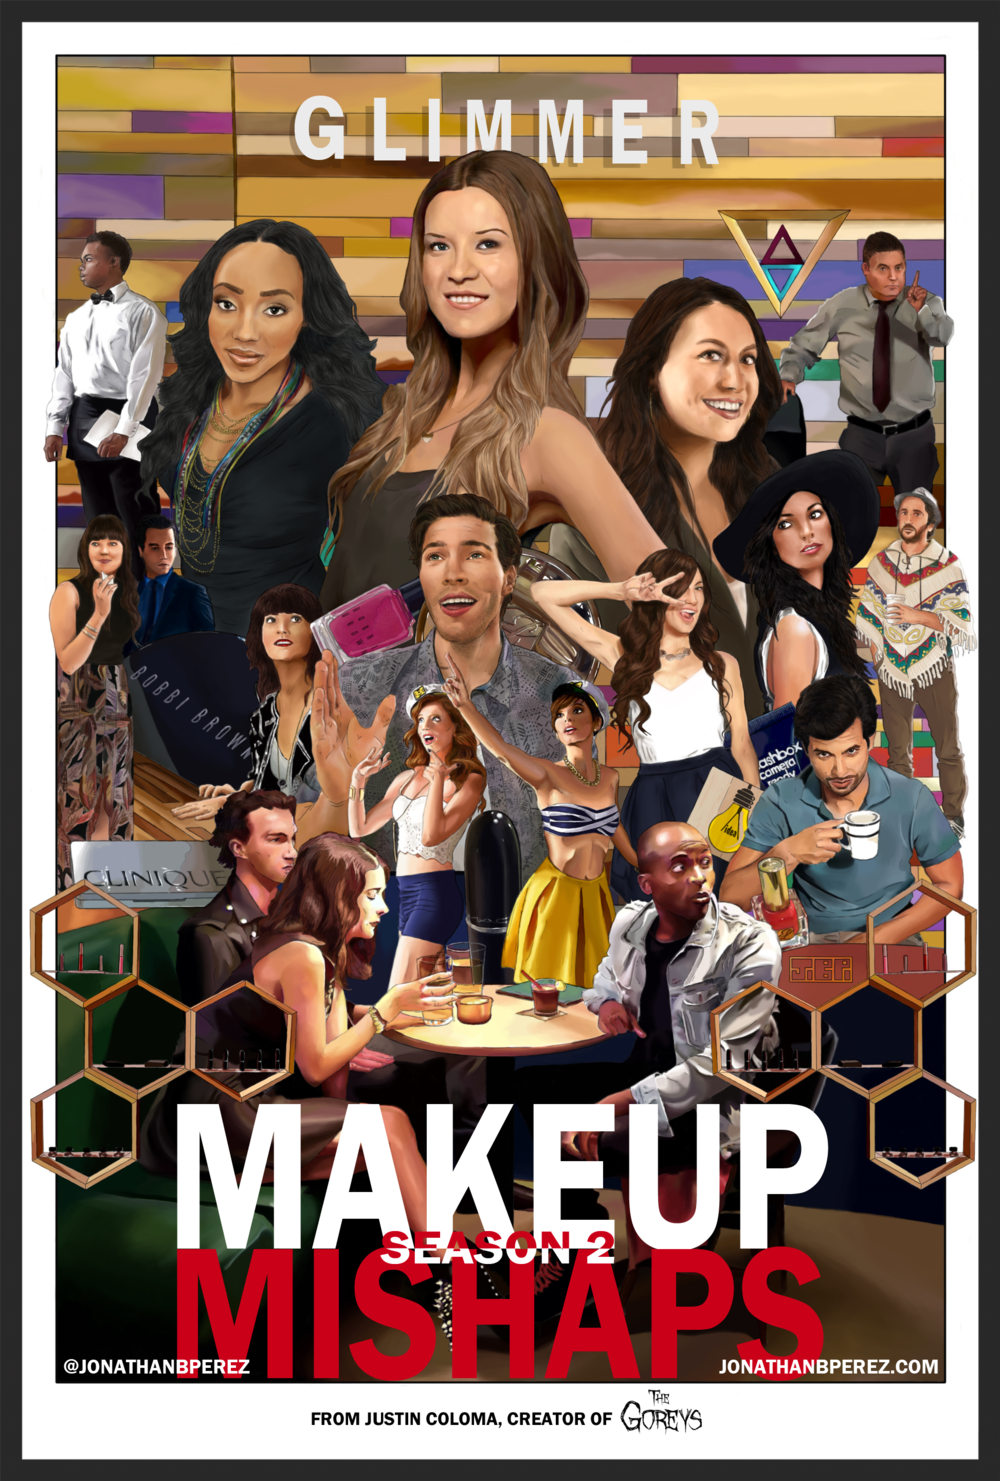 Poster for the new season of  Makeup Mishaps , Produced by Estee Lauder & ILoveMakeup, Written and Directed by Justin Coloma, and Starring Meghan Rienks, Sharifa Oliver, Sarah Cortez, Constanza Palavecino, Kimberly Guevera, Trey Baxter, Alejandro Sandoval, Javier Ronceros, Emma Blyth, and Matt Smith.   Original artwork by  Jonathan B Perez ©